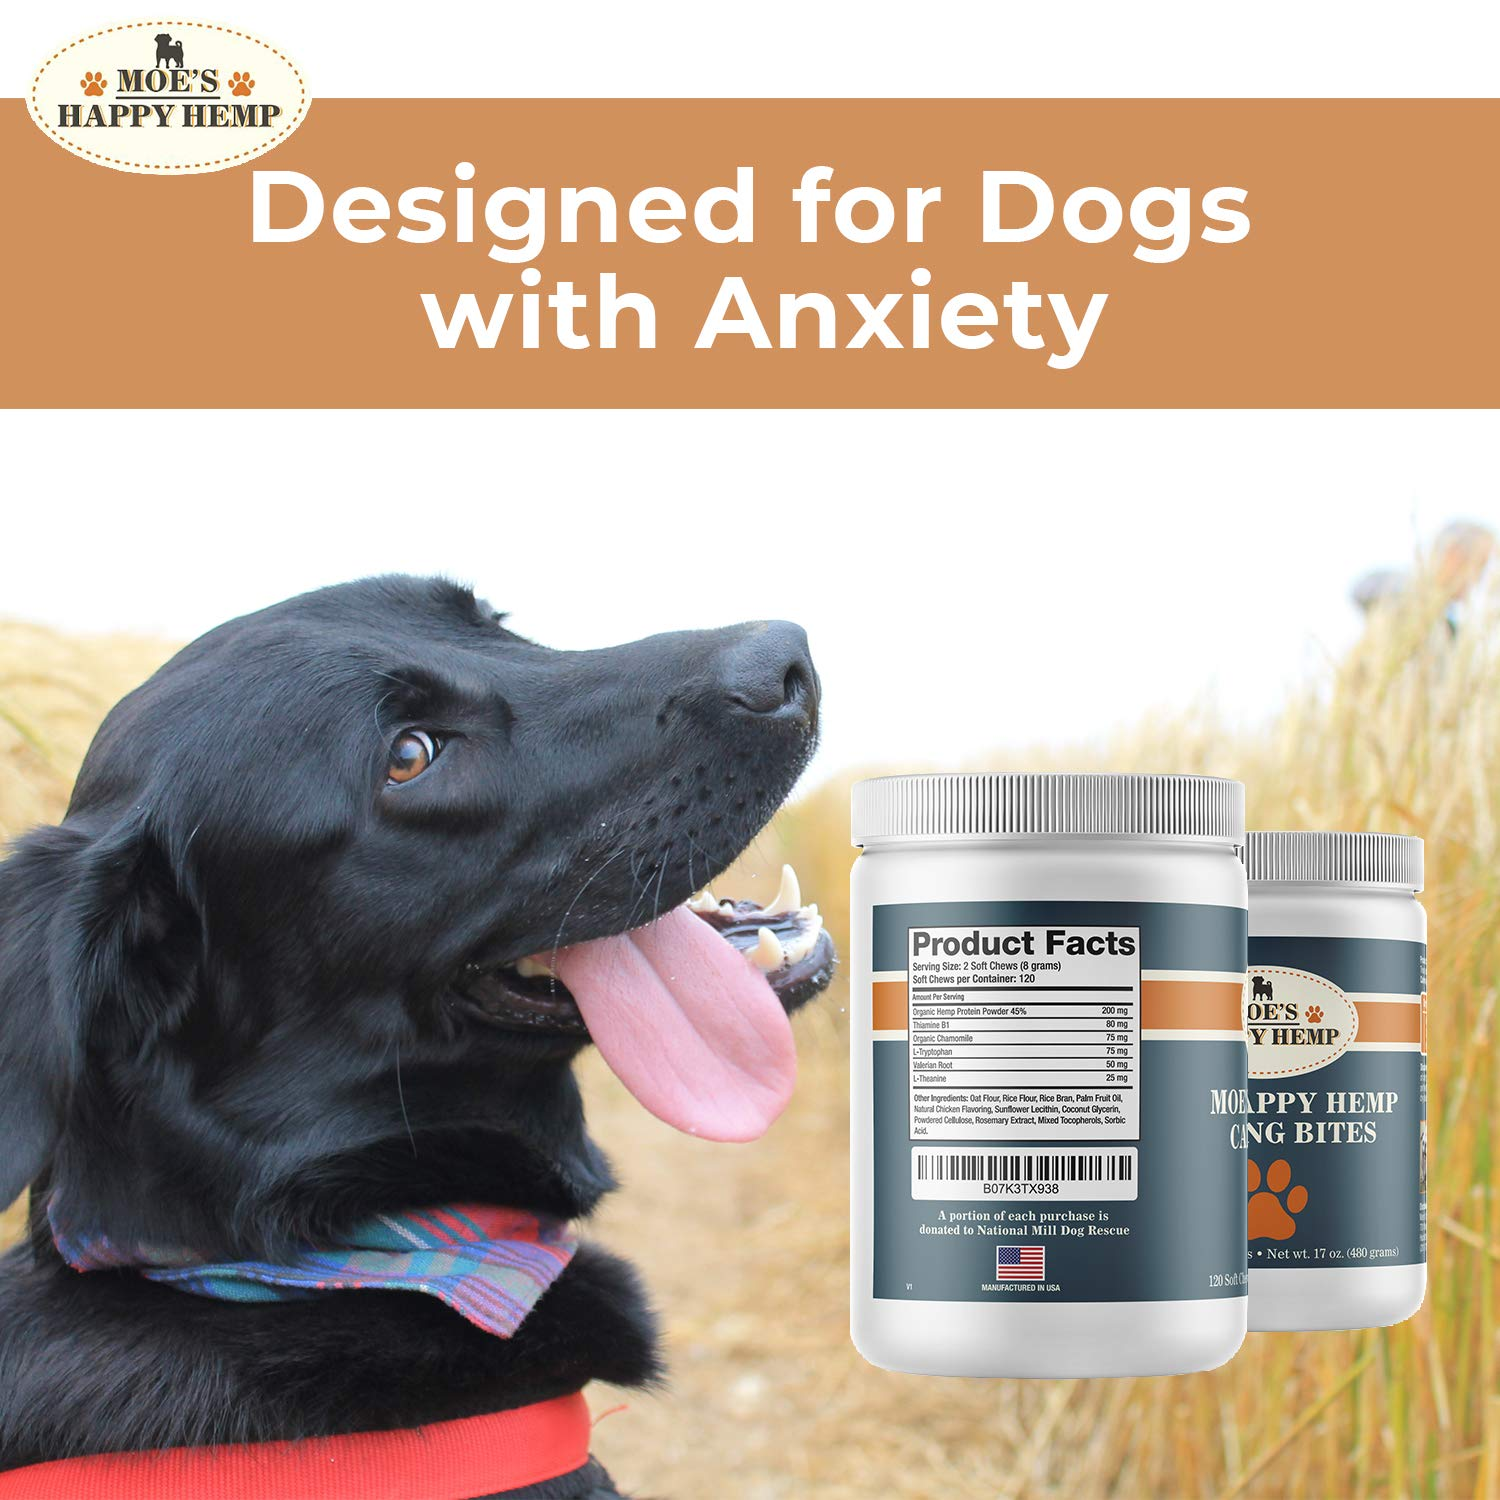 Organic Calm Hemp Treats for Dogs: Dog Anxiety Relief and Calming Aid for Hyperactive or Aggressive Pets - Daily Supplement to Support Joints and Healthy Skin and Coat - 120 Soft Chews, Chicken Flavor by Moe's Organics